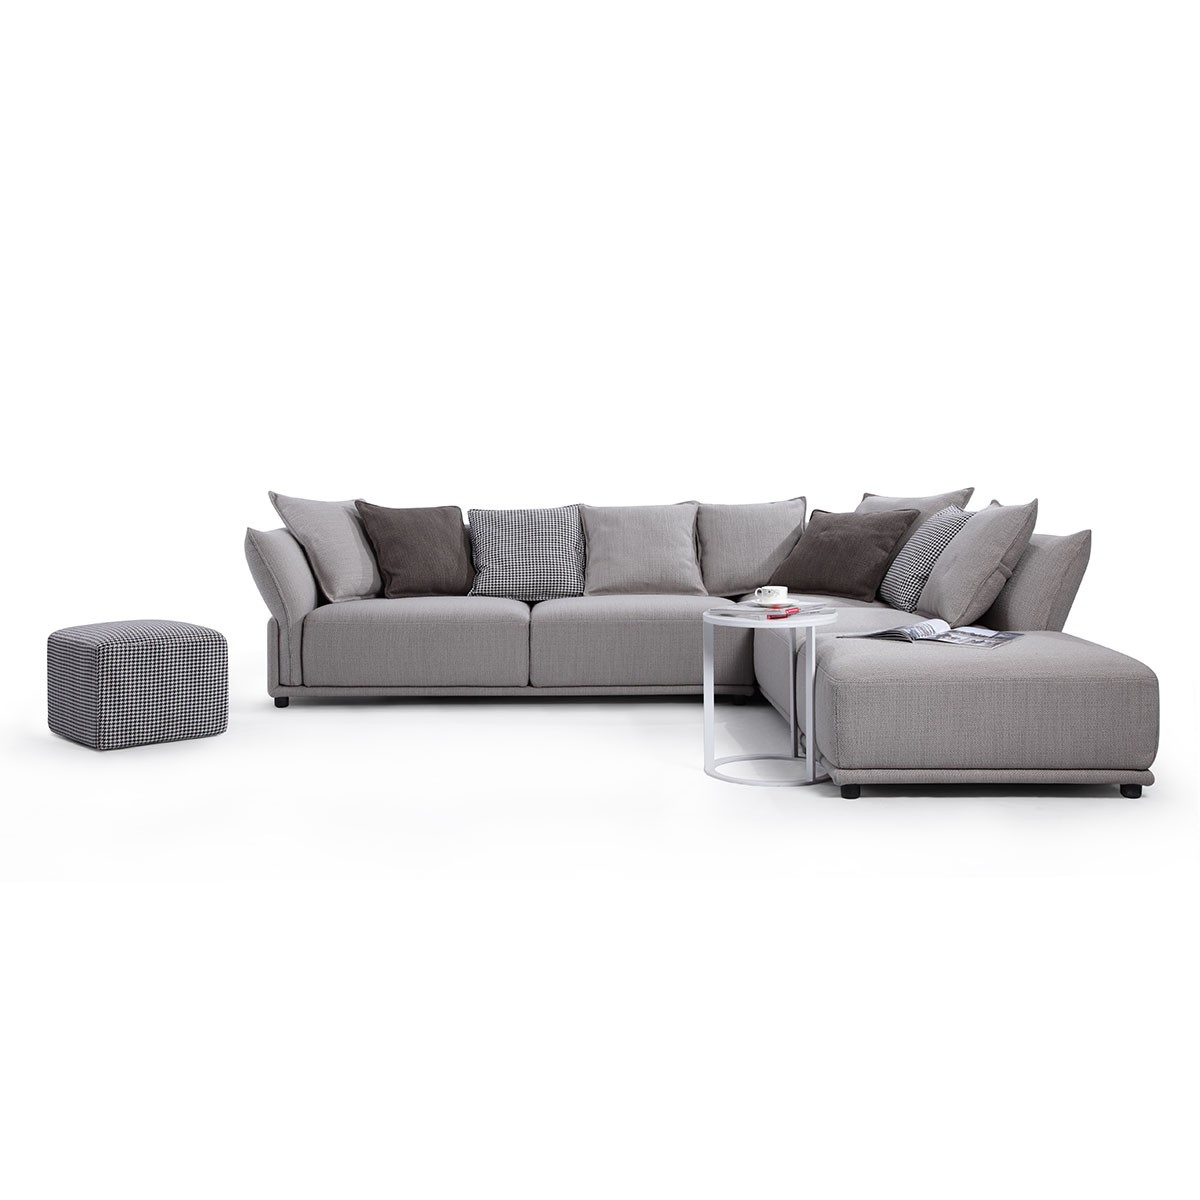 Fabric Right-facing Chaise Sectional with Ottoman and Pillows - Grey (BO-9081)